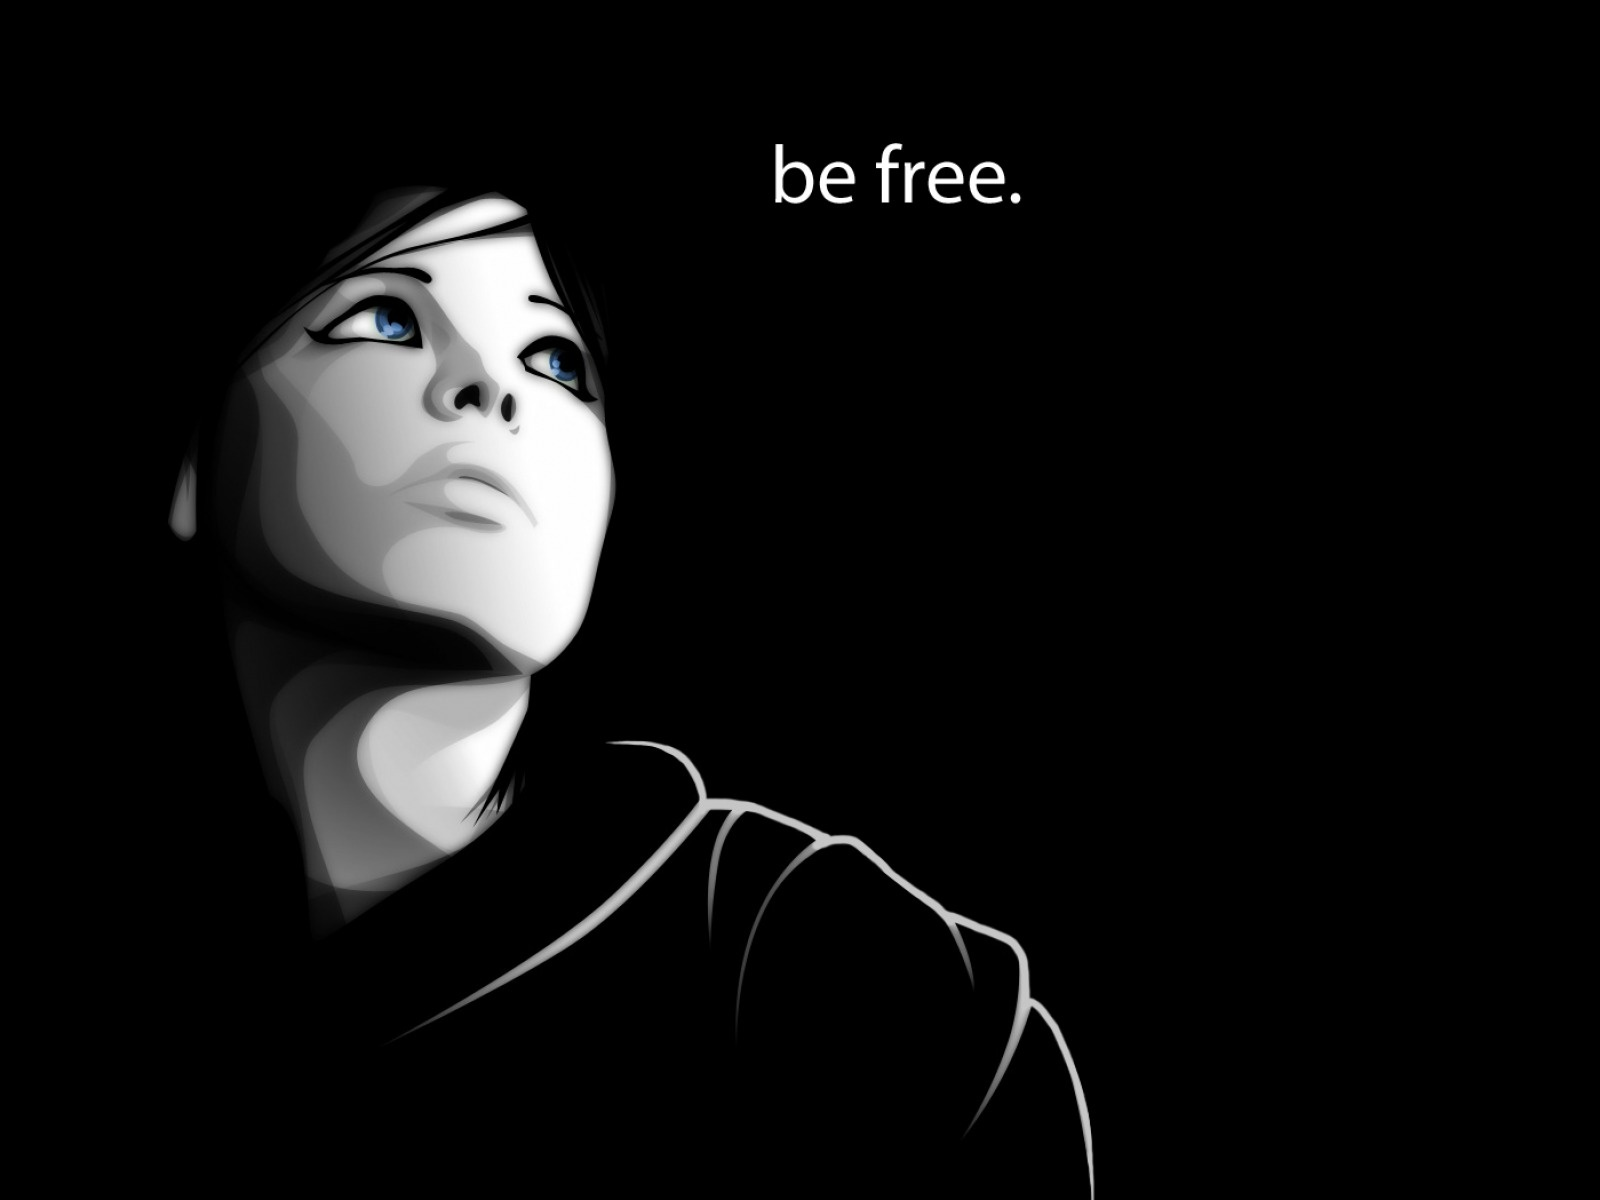 1500x500 Woman Darkness Be Free Twitter Header Photo: wallpaperstock.net/woman-darkness-be-free_twitter_cover_41810...